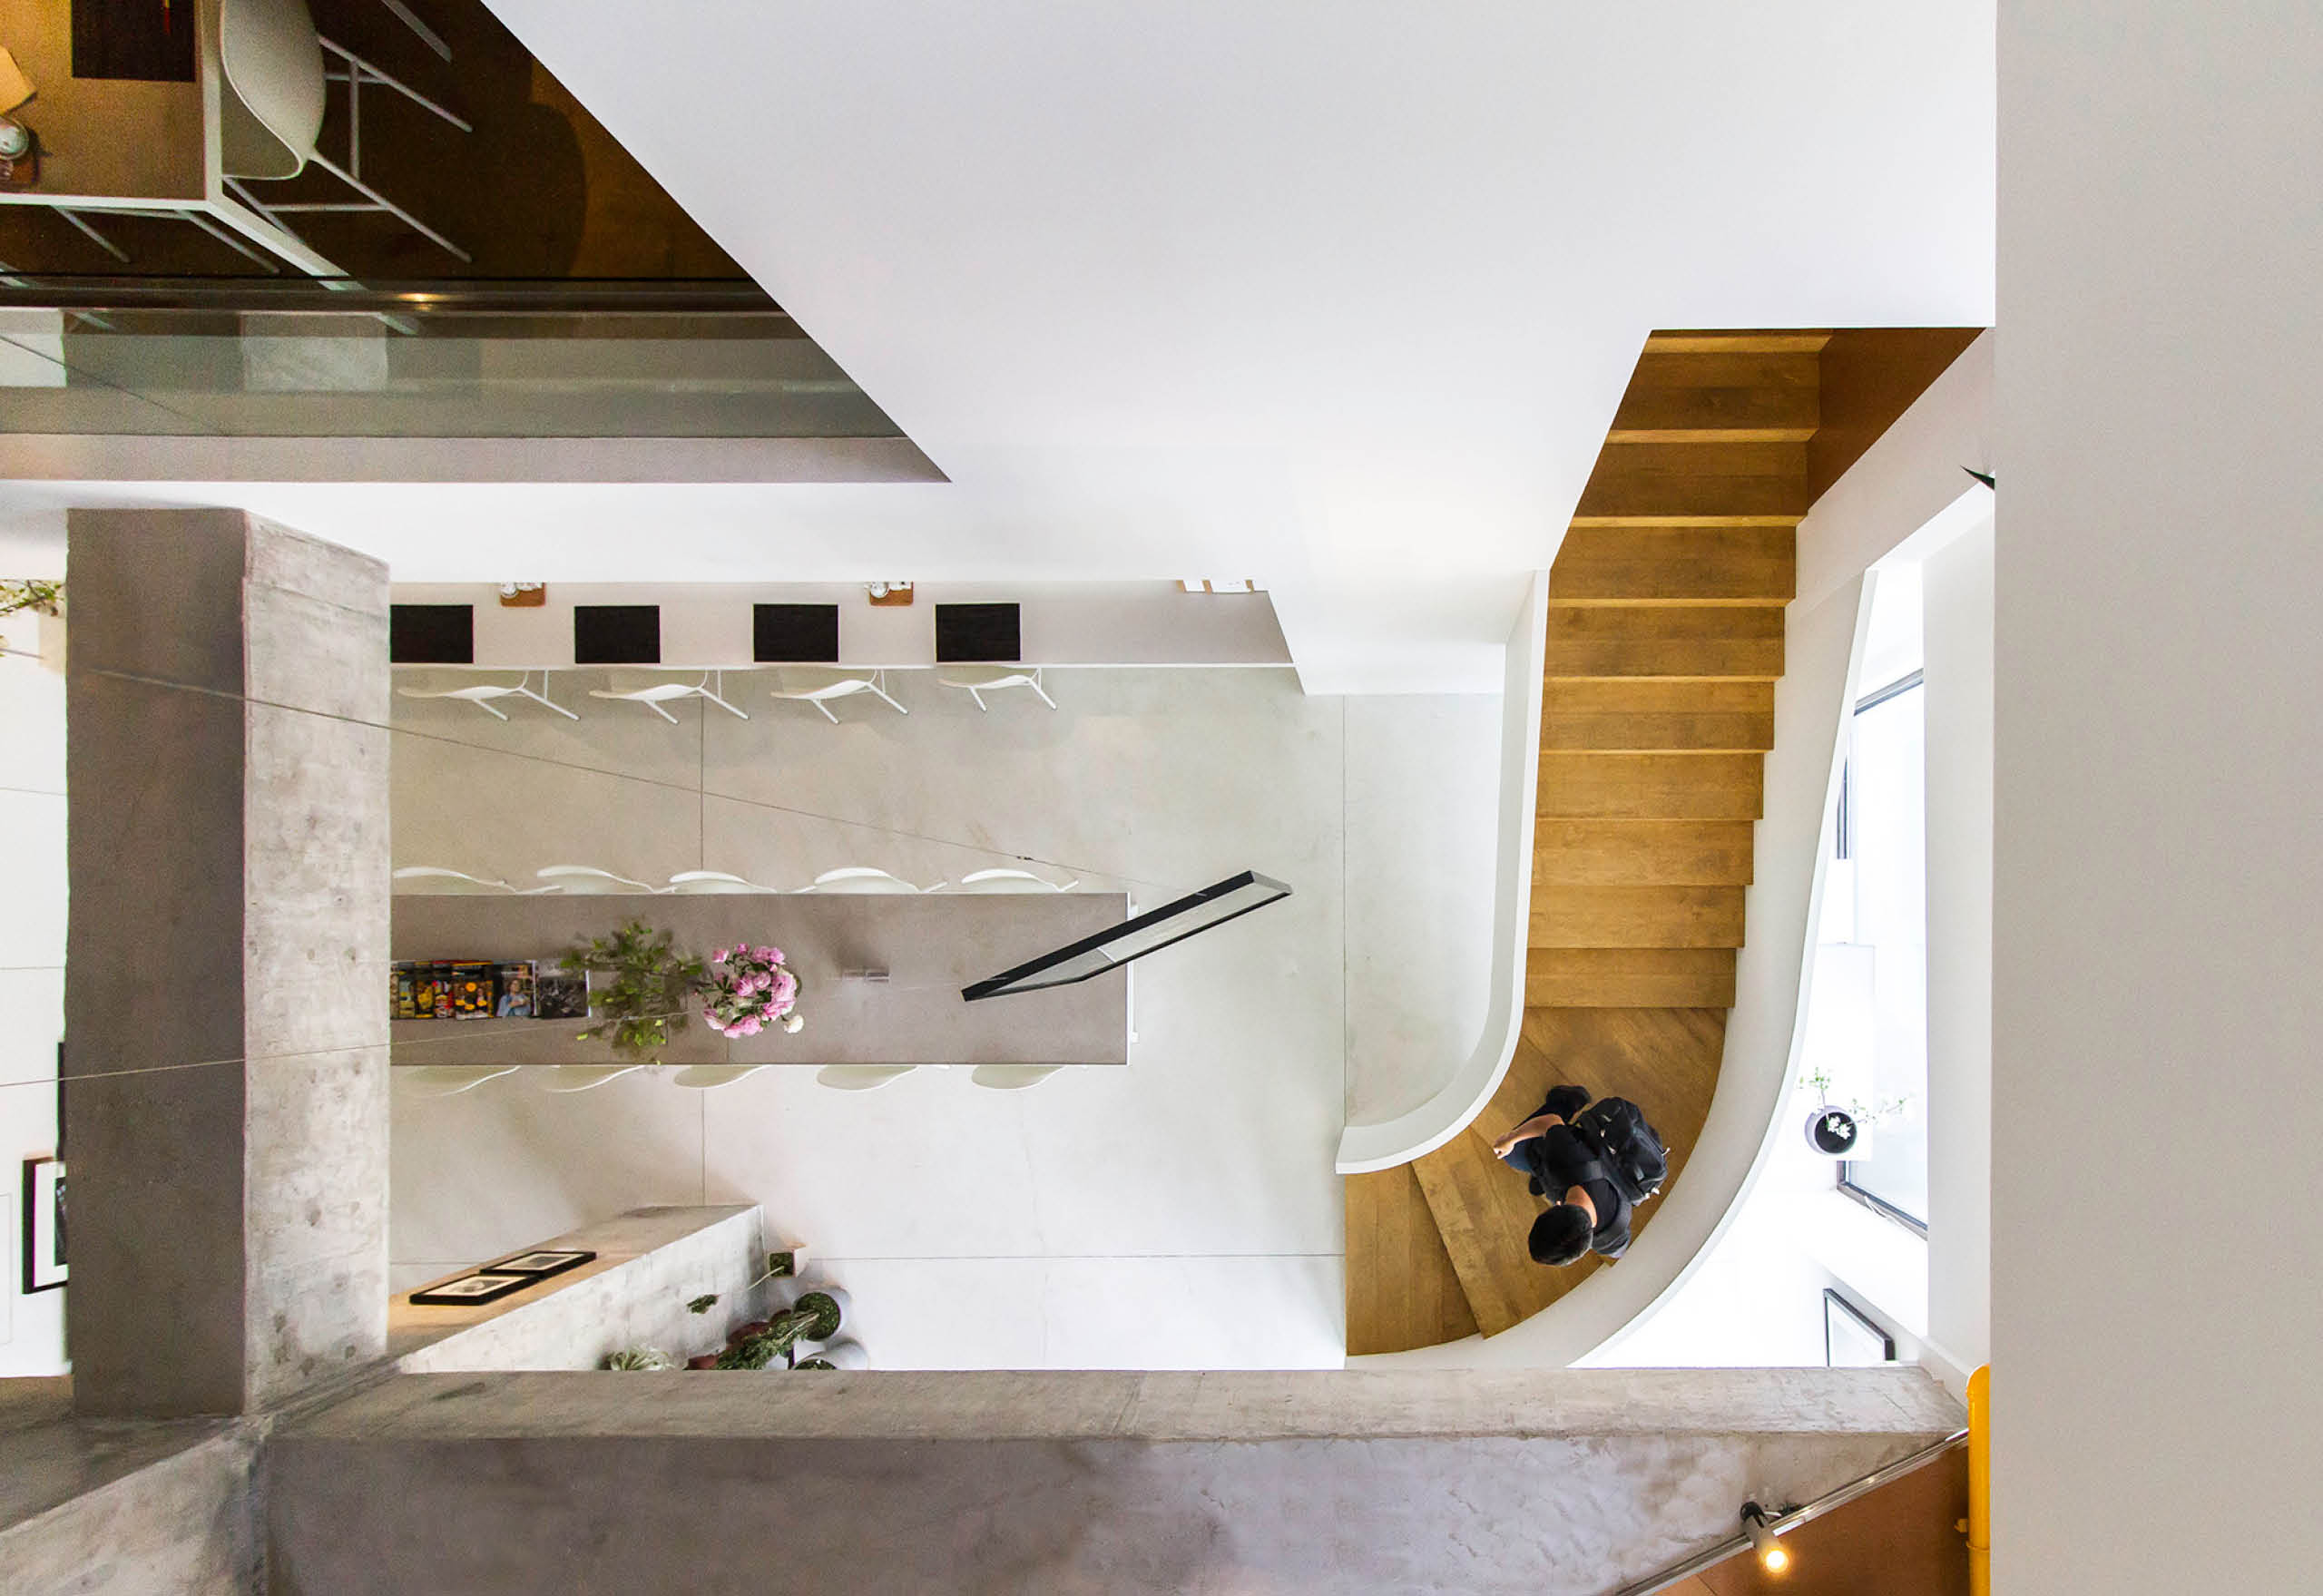 The caramel-colored staircase and other wood elements are a welcome warm contrast to Life As It Is (LAII) Gallery's crisp white scenes.